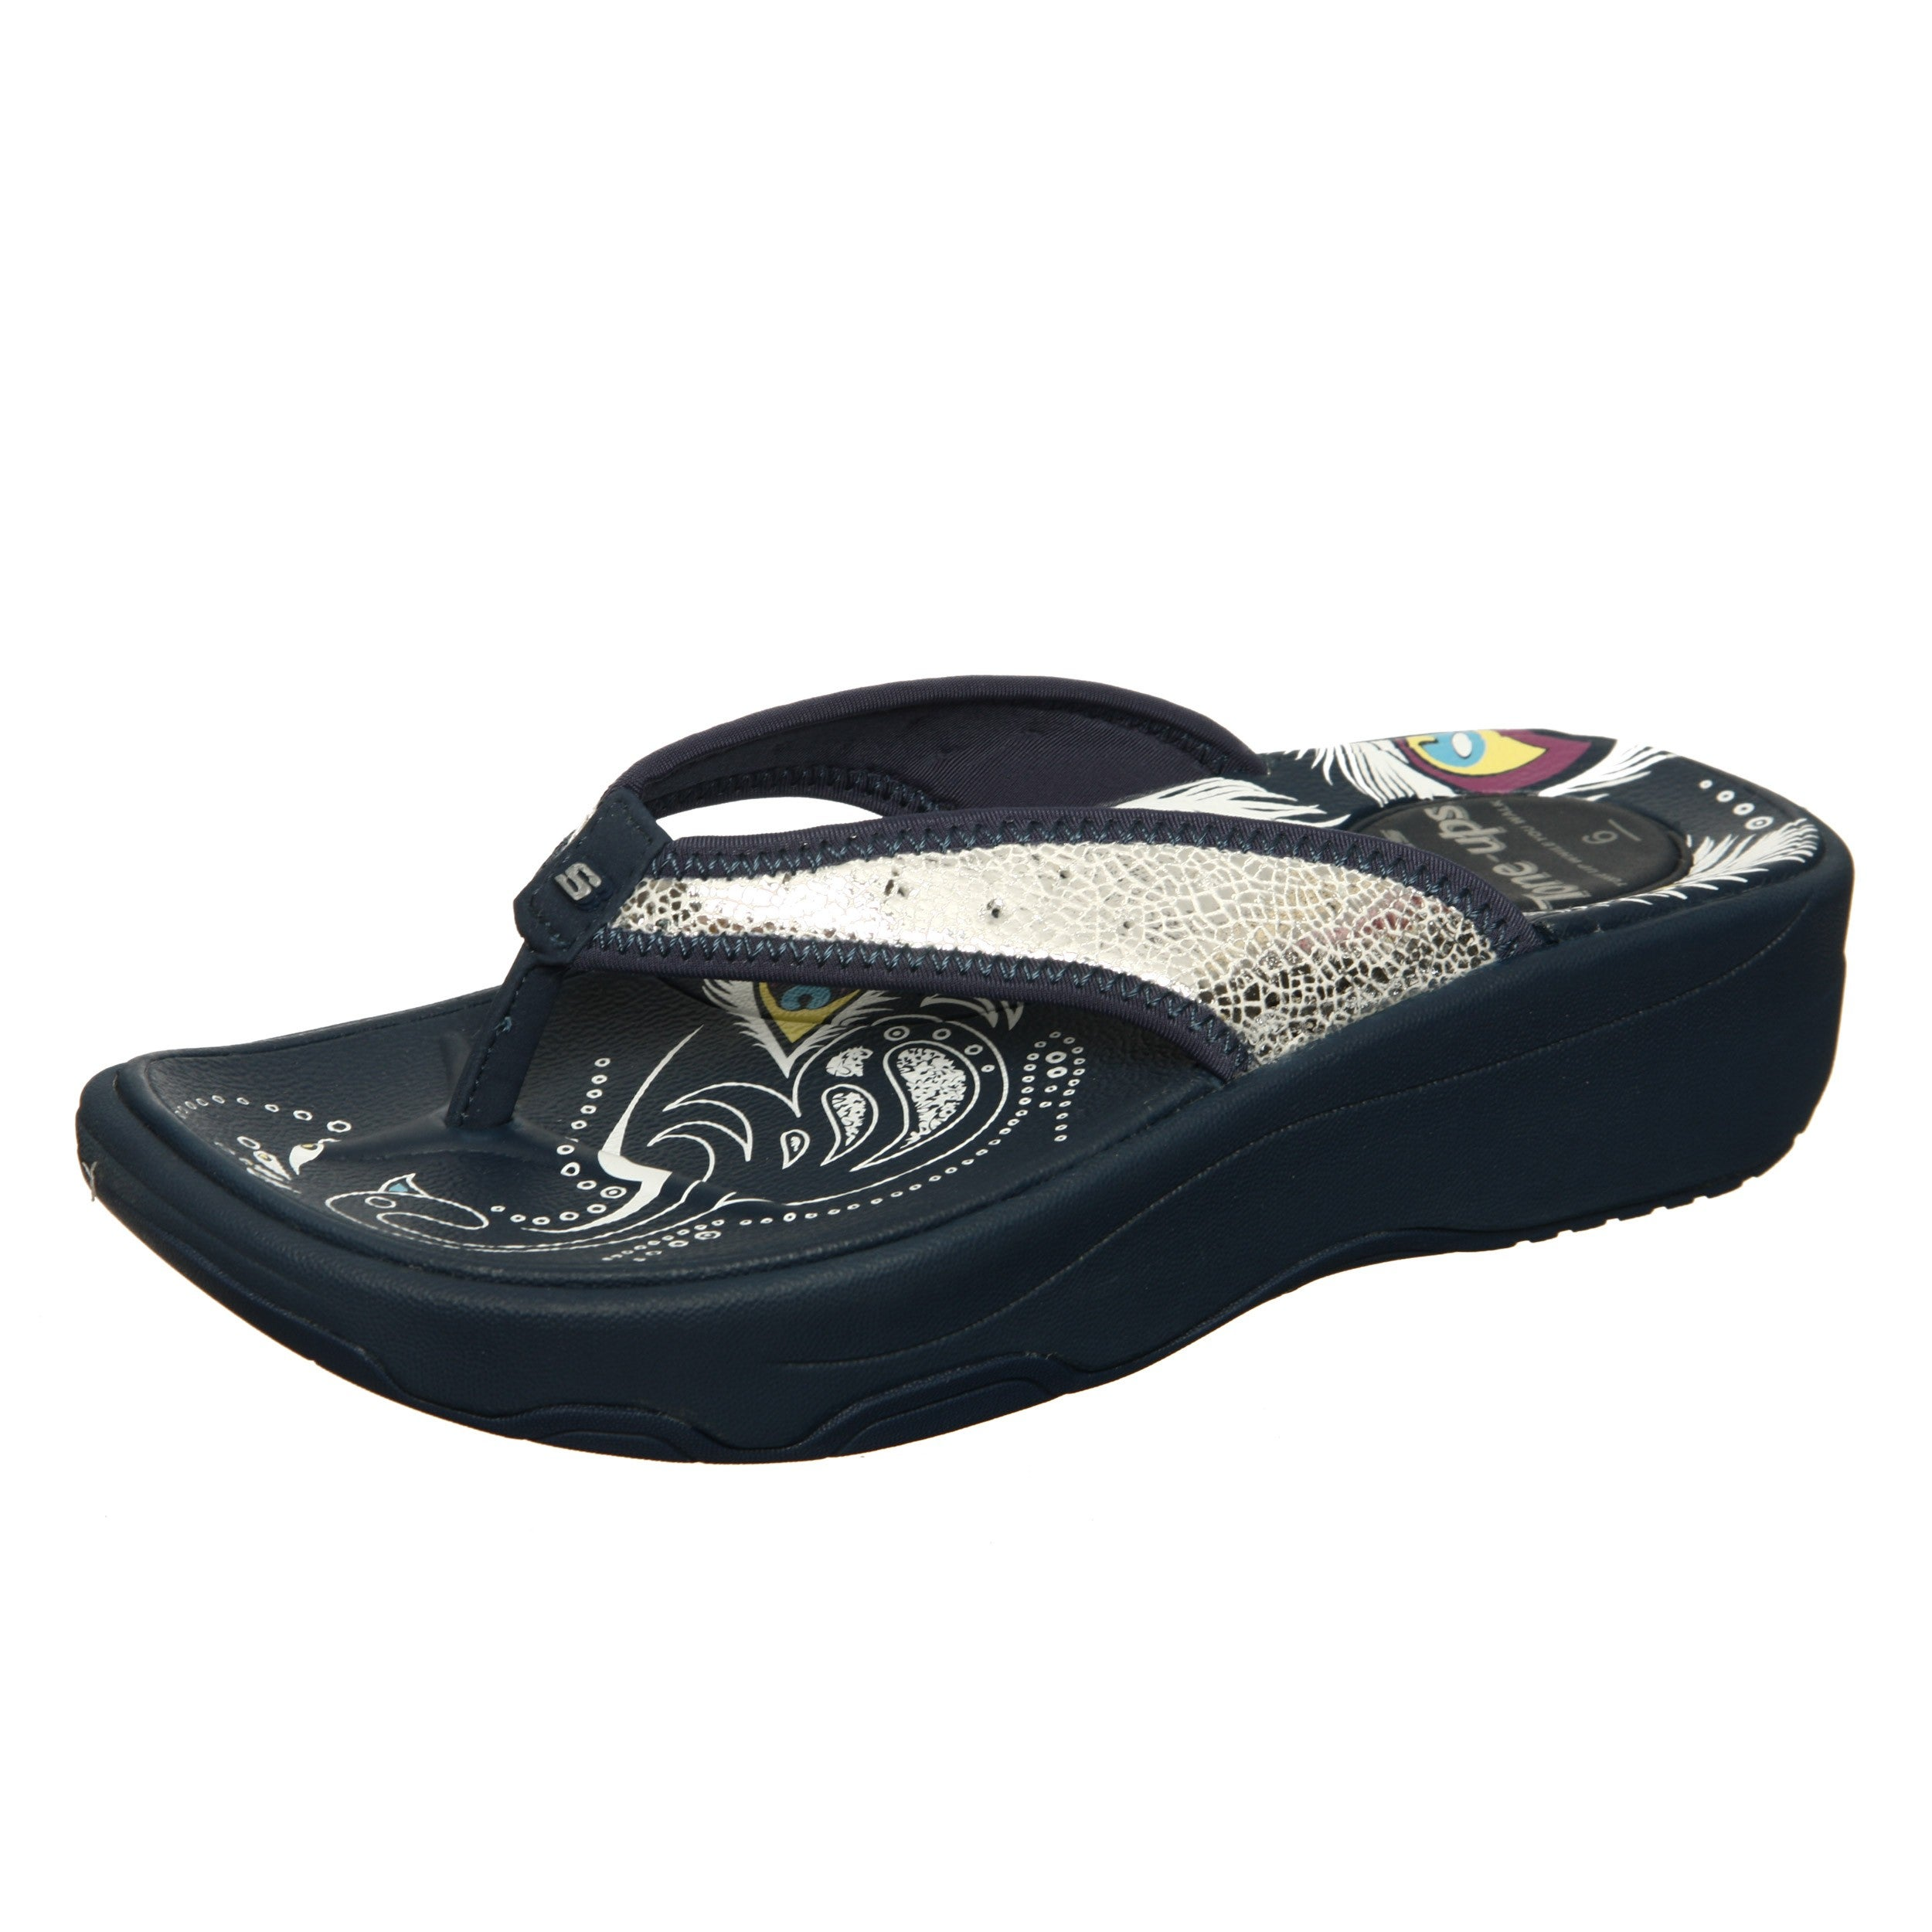 5aacb26de858 Shop Skechers USA Women s Tone-ups  Beach Body  Thong Style Toning Sandals  - Free Shipping On Orders Over  45 - Overstock - 5960614